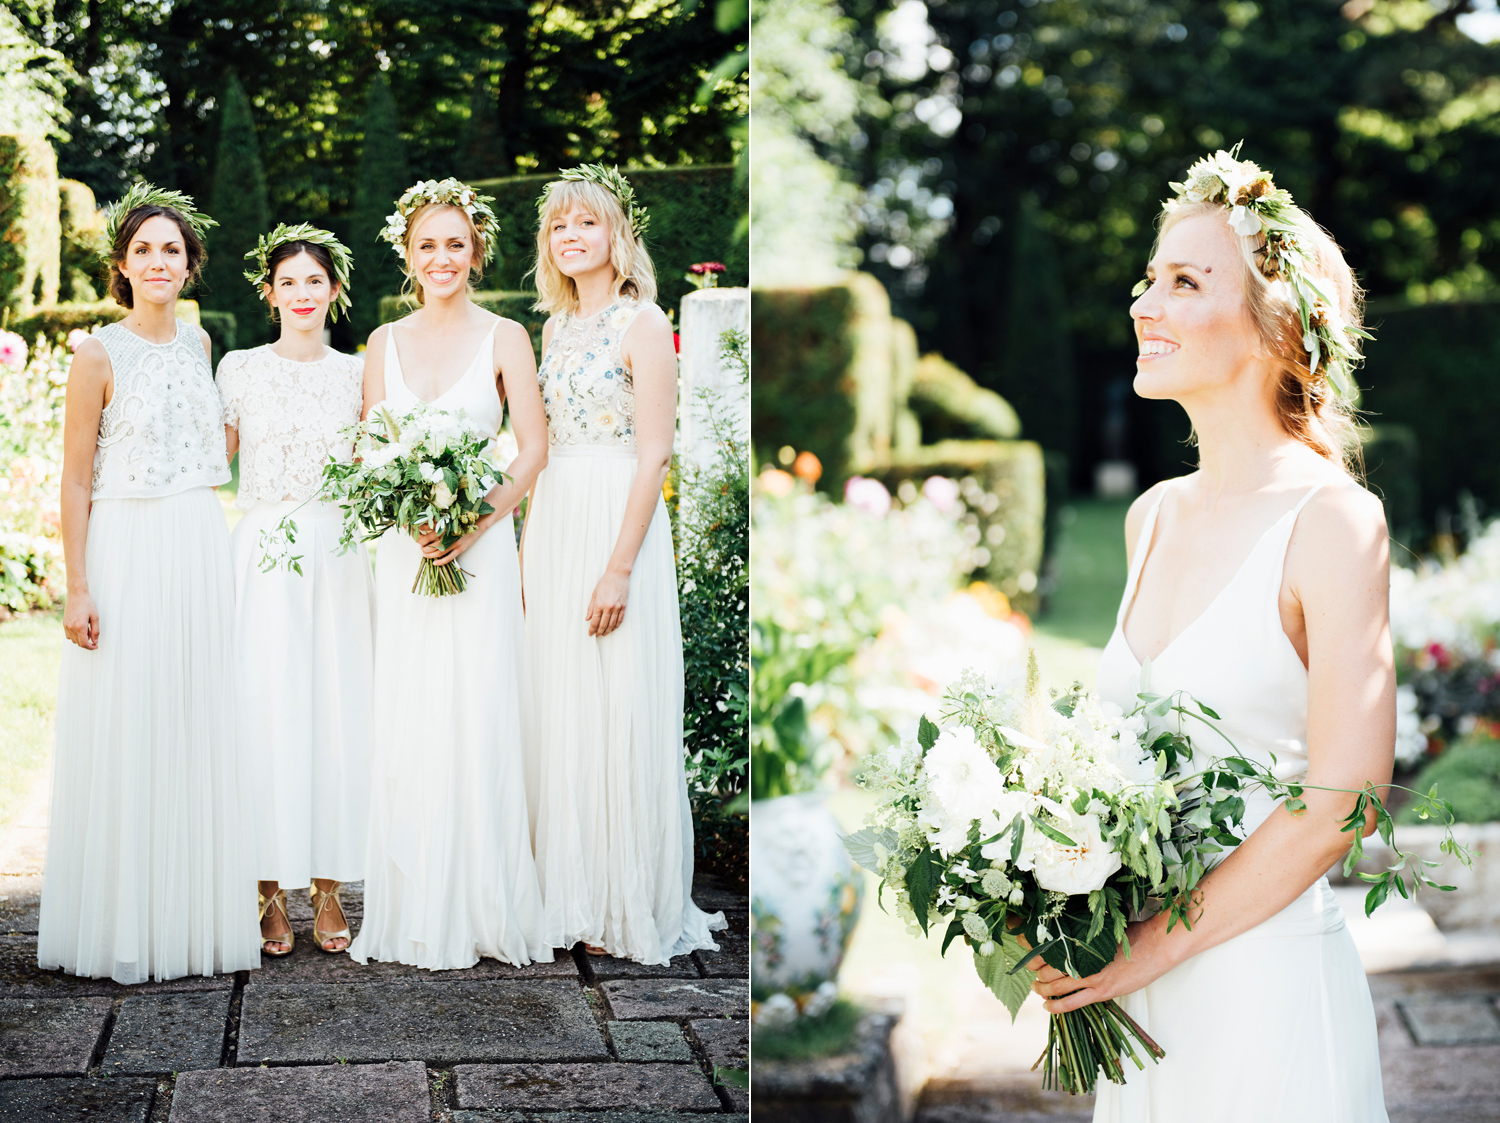 Katie_Mitchell_Photography_French_Country_Garden_Wedding_Paris_13.jpg